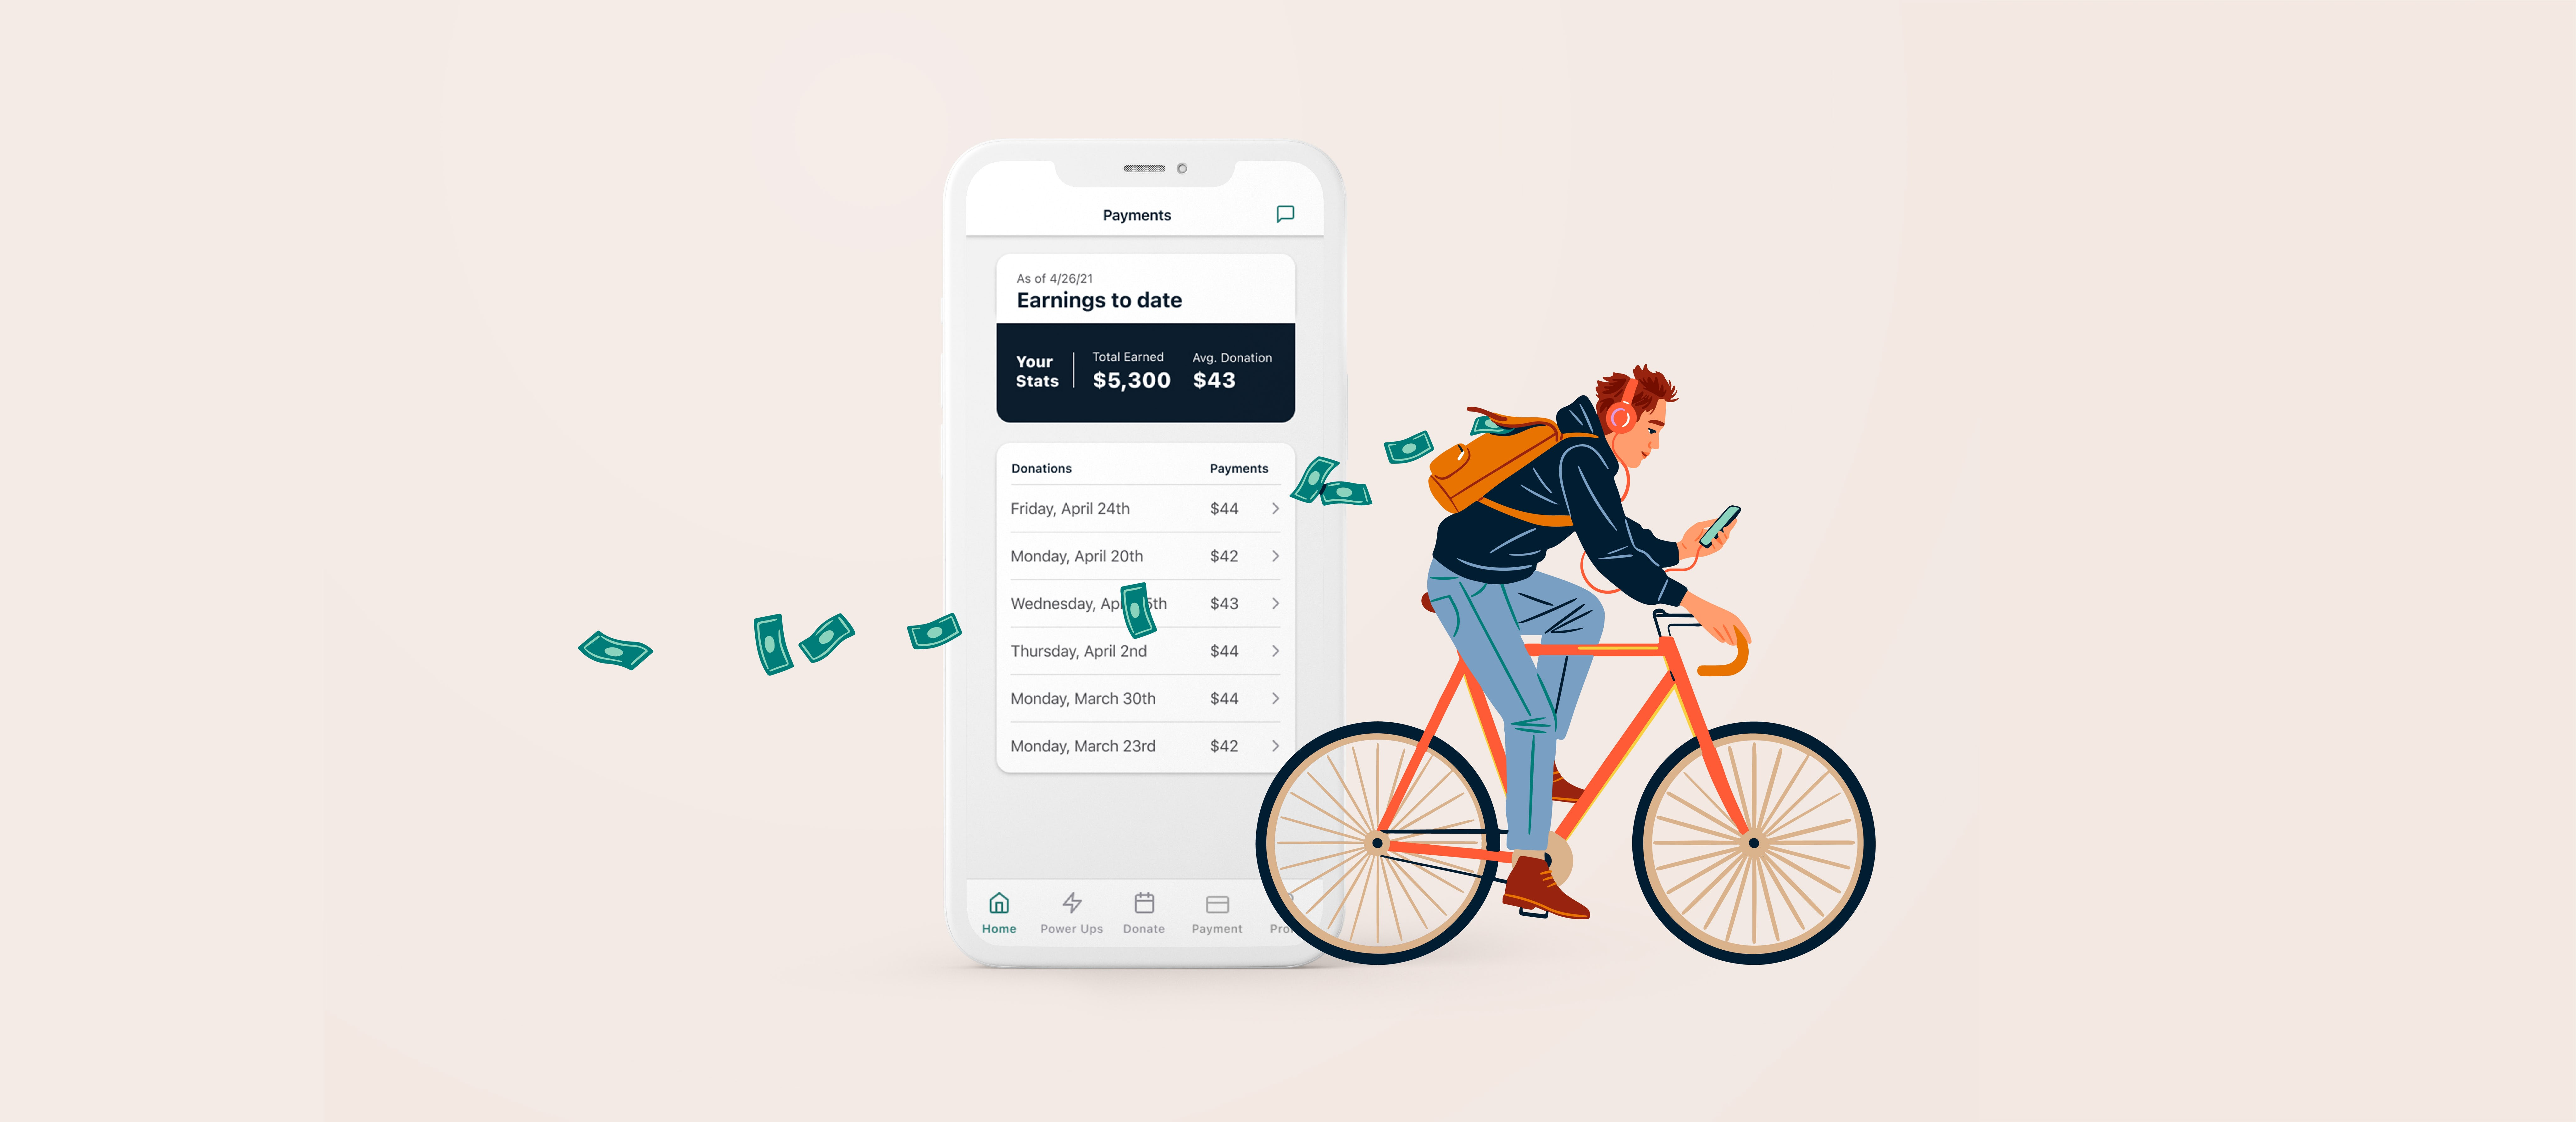 Illustration of man on a bicycle in front of a giant smartphone with dollar bills floating behind him.